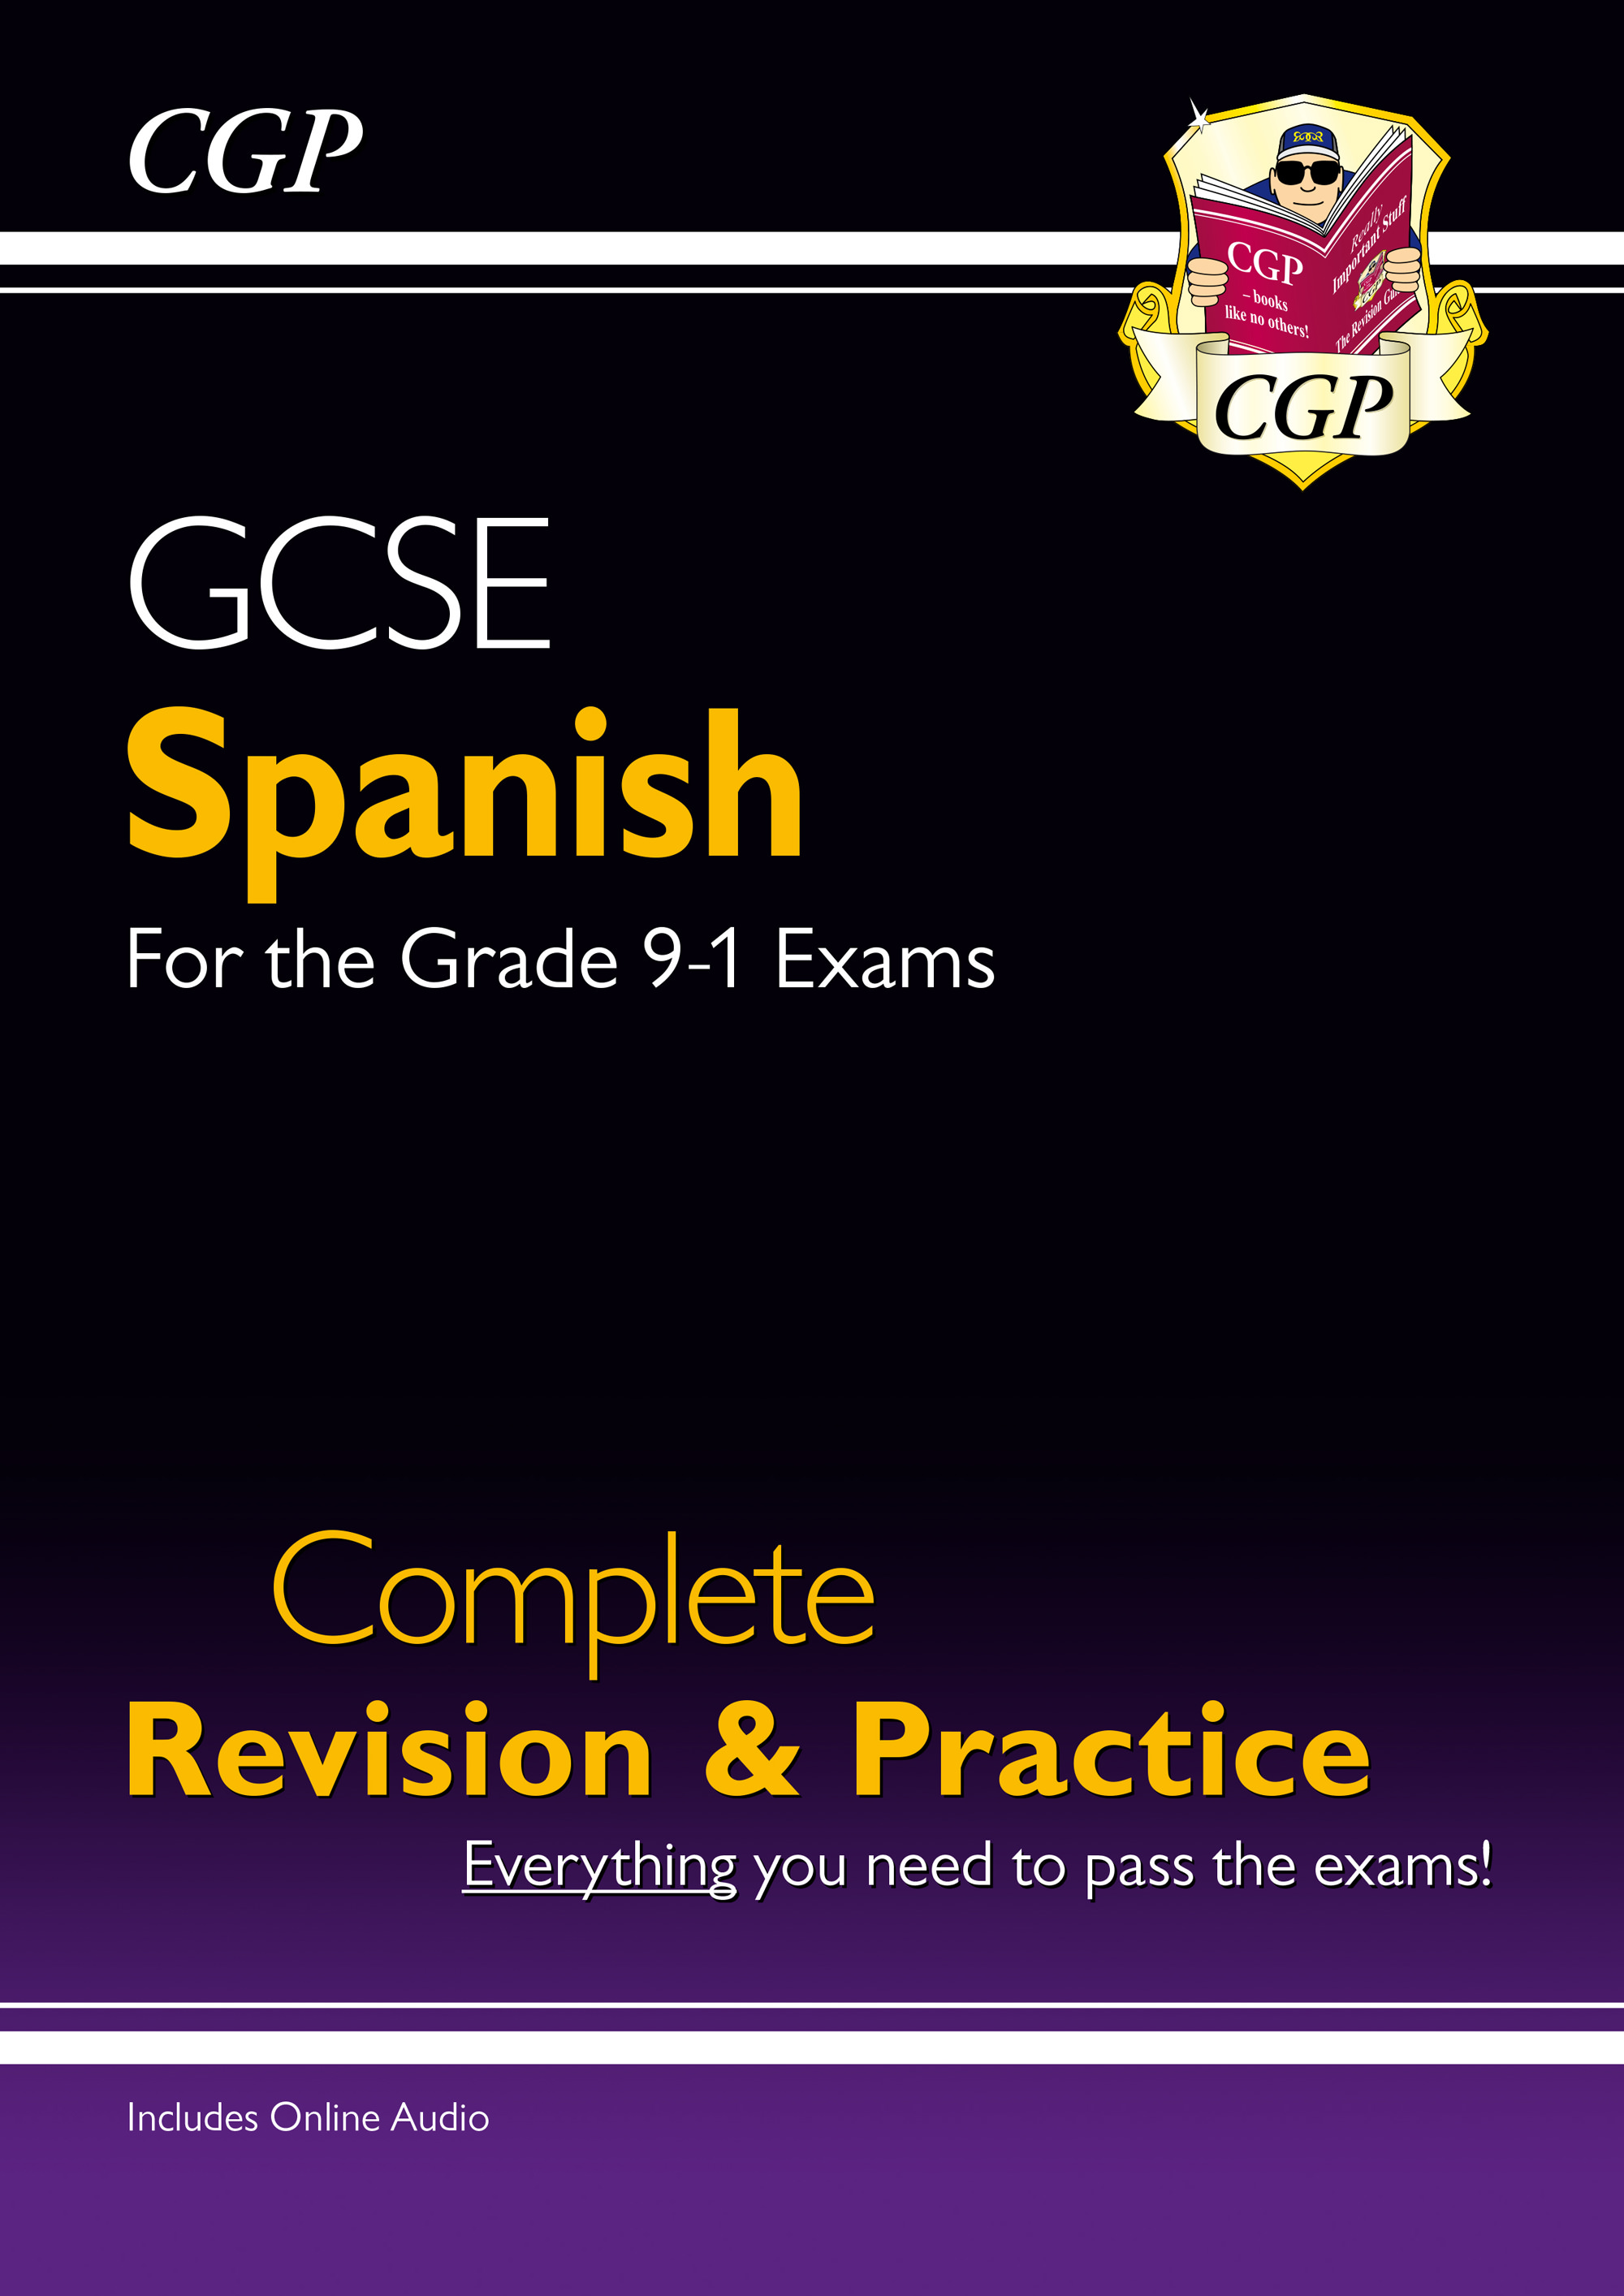 SPHS44DK - New GCSE Spanish Complete Revision & Practice - Grade 9-1 Course